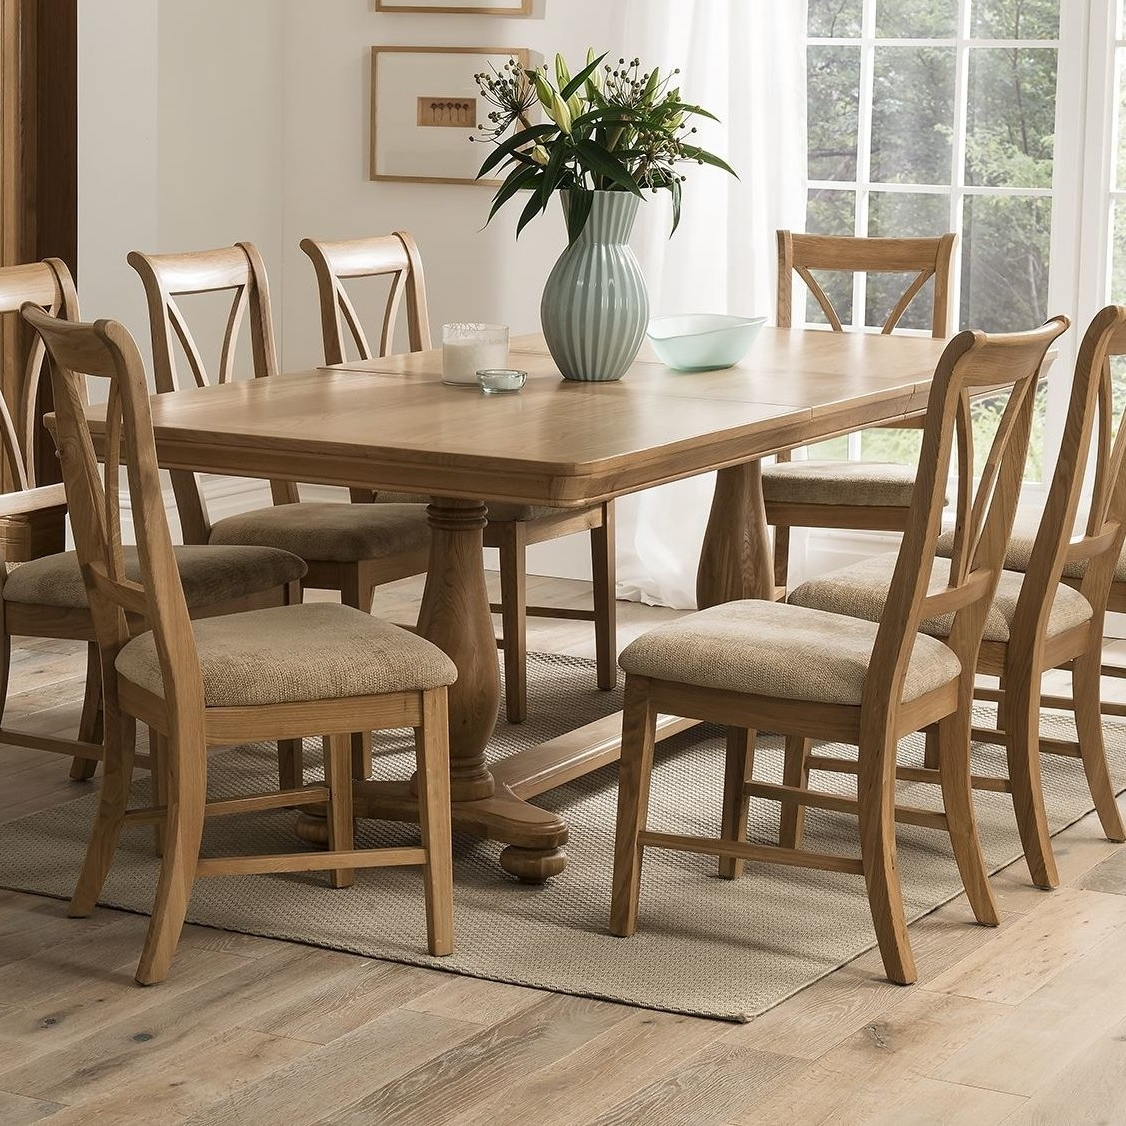 Widely Used Homestead Living Rowan Extendable Dining Table And 6 Chairs Inside Extendable Dining Tables 6 Chairs (View 25 of 25)